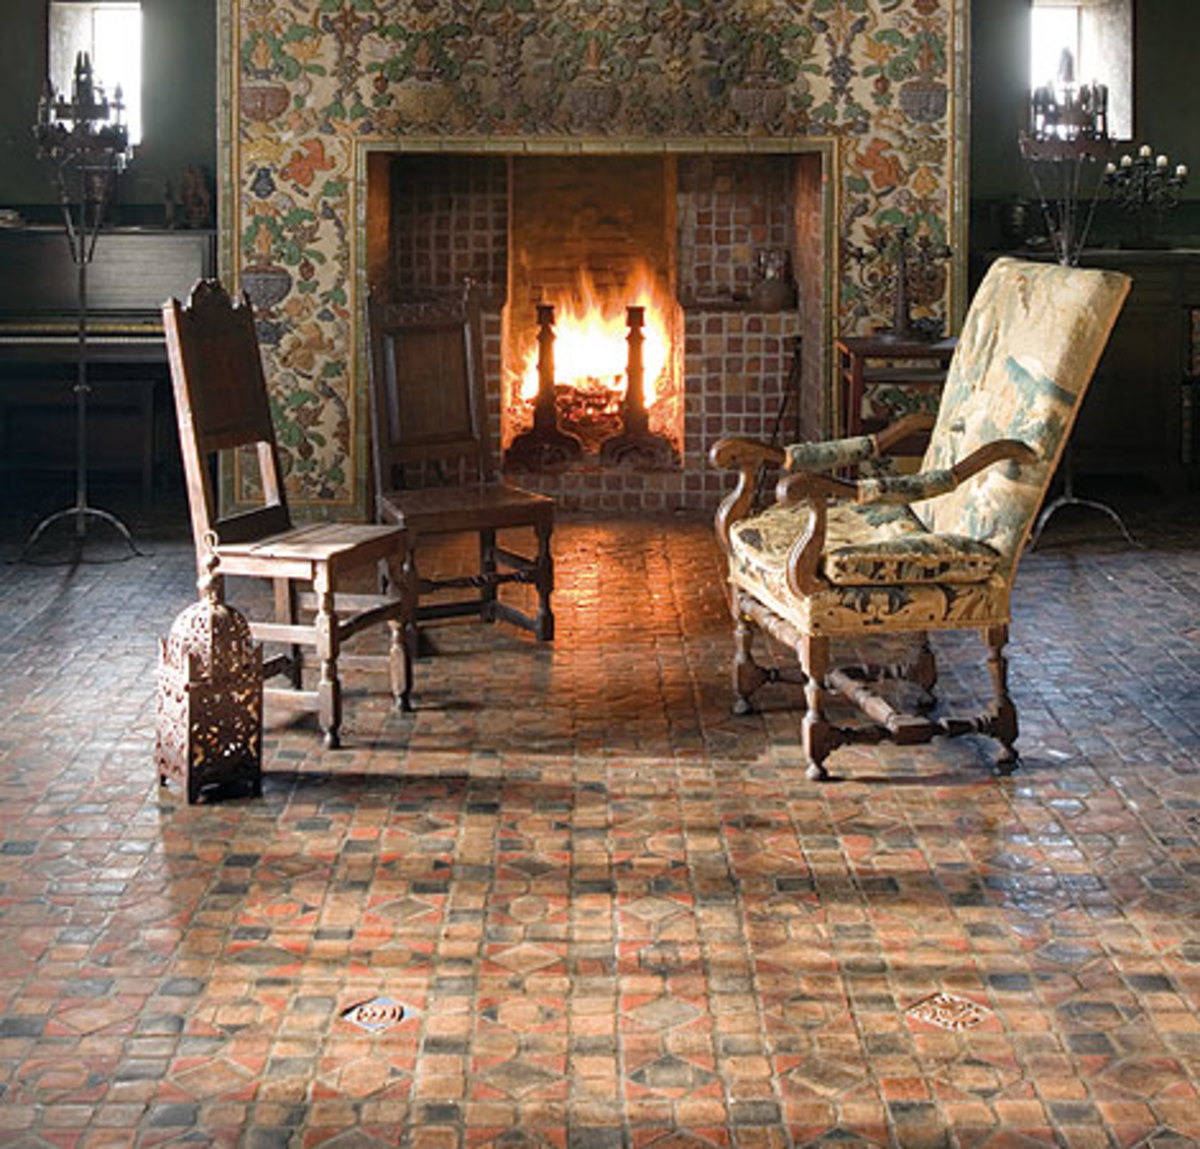 Fireplace with original Moravian tile by Henry Chapman Mercer.